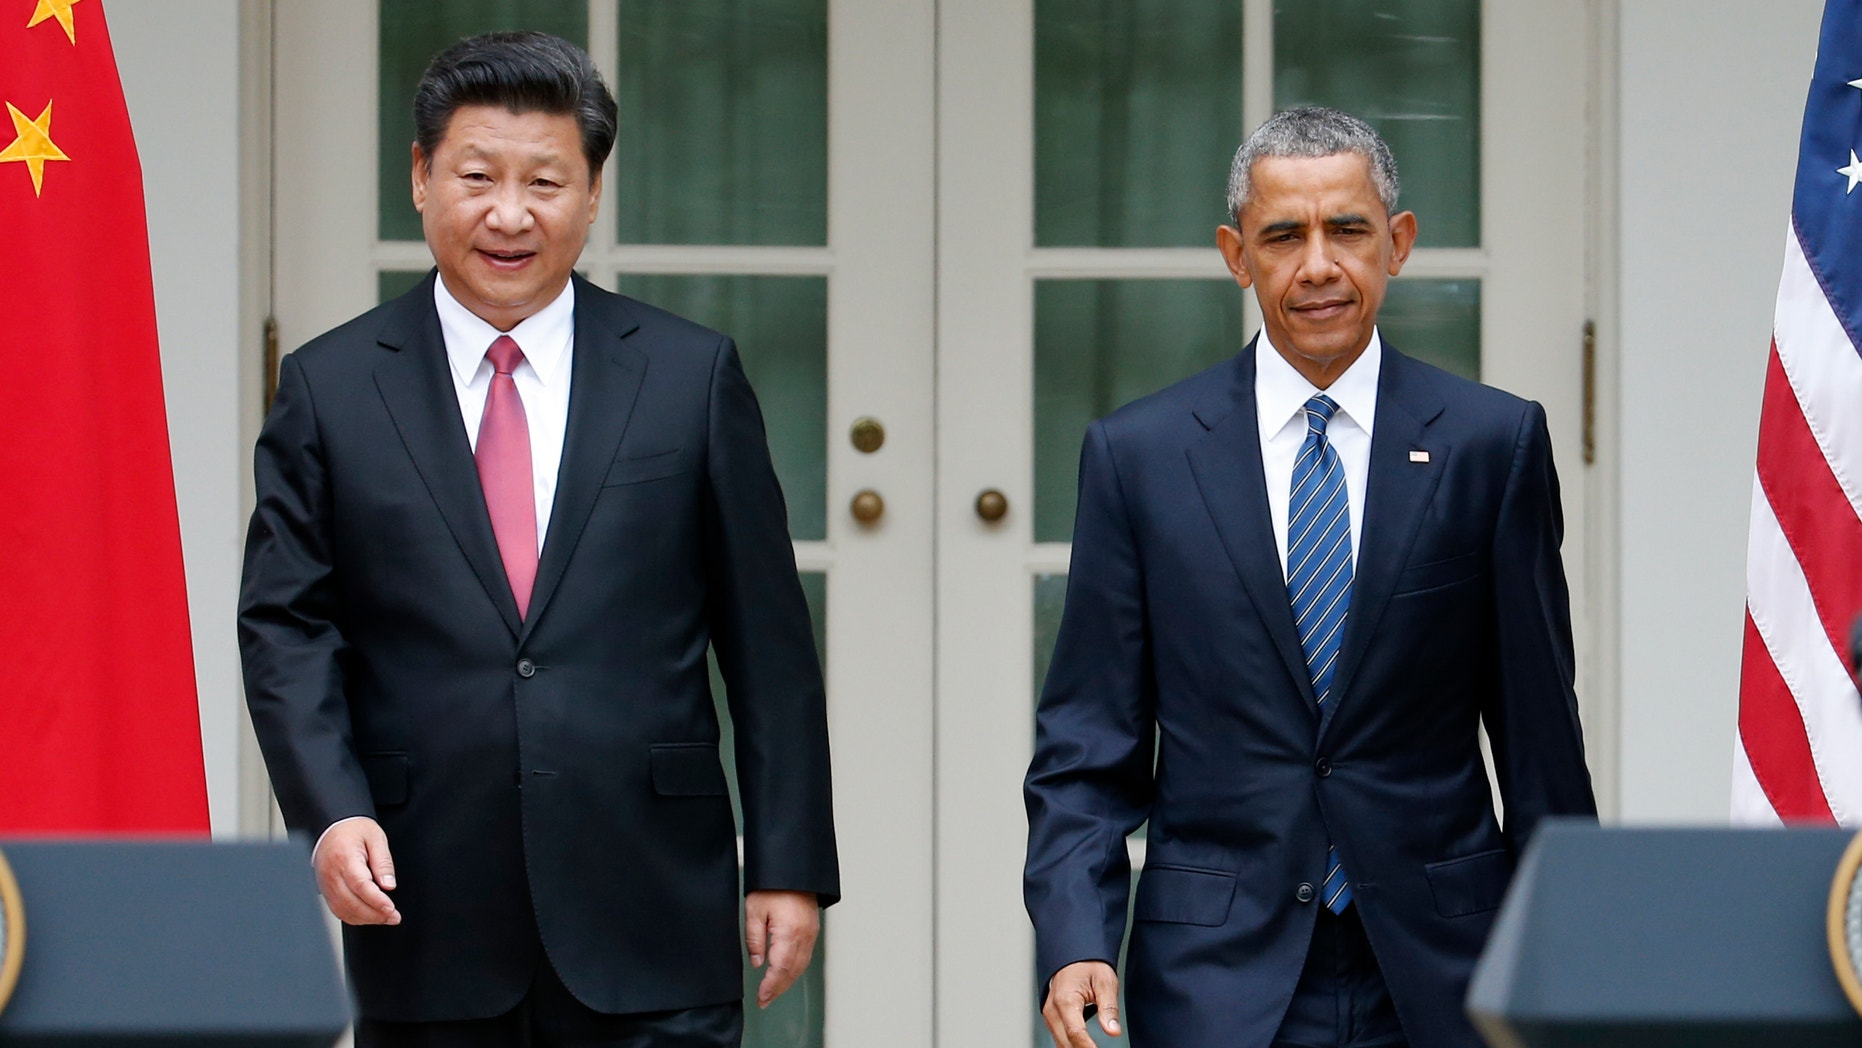 President Barack Obama and Chinese President Xi Jinping arrive for their joint new conference, Friday, Sept. 25,2015, in the Rose Garden of the White House in Washington. (AP Photo/Evan Vucci)